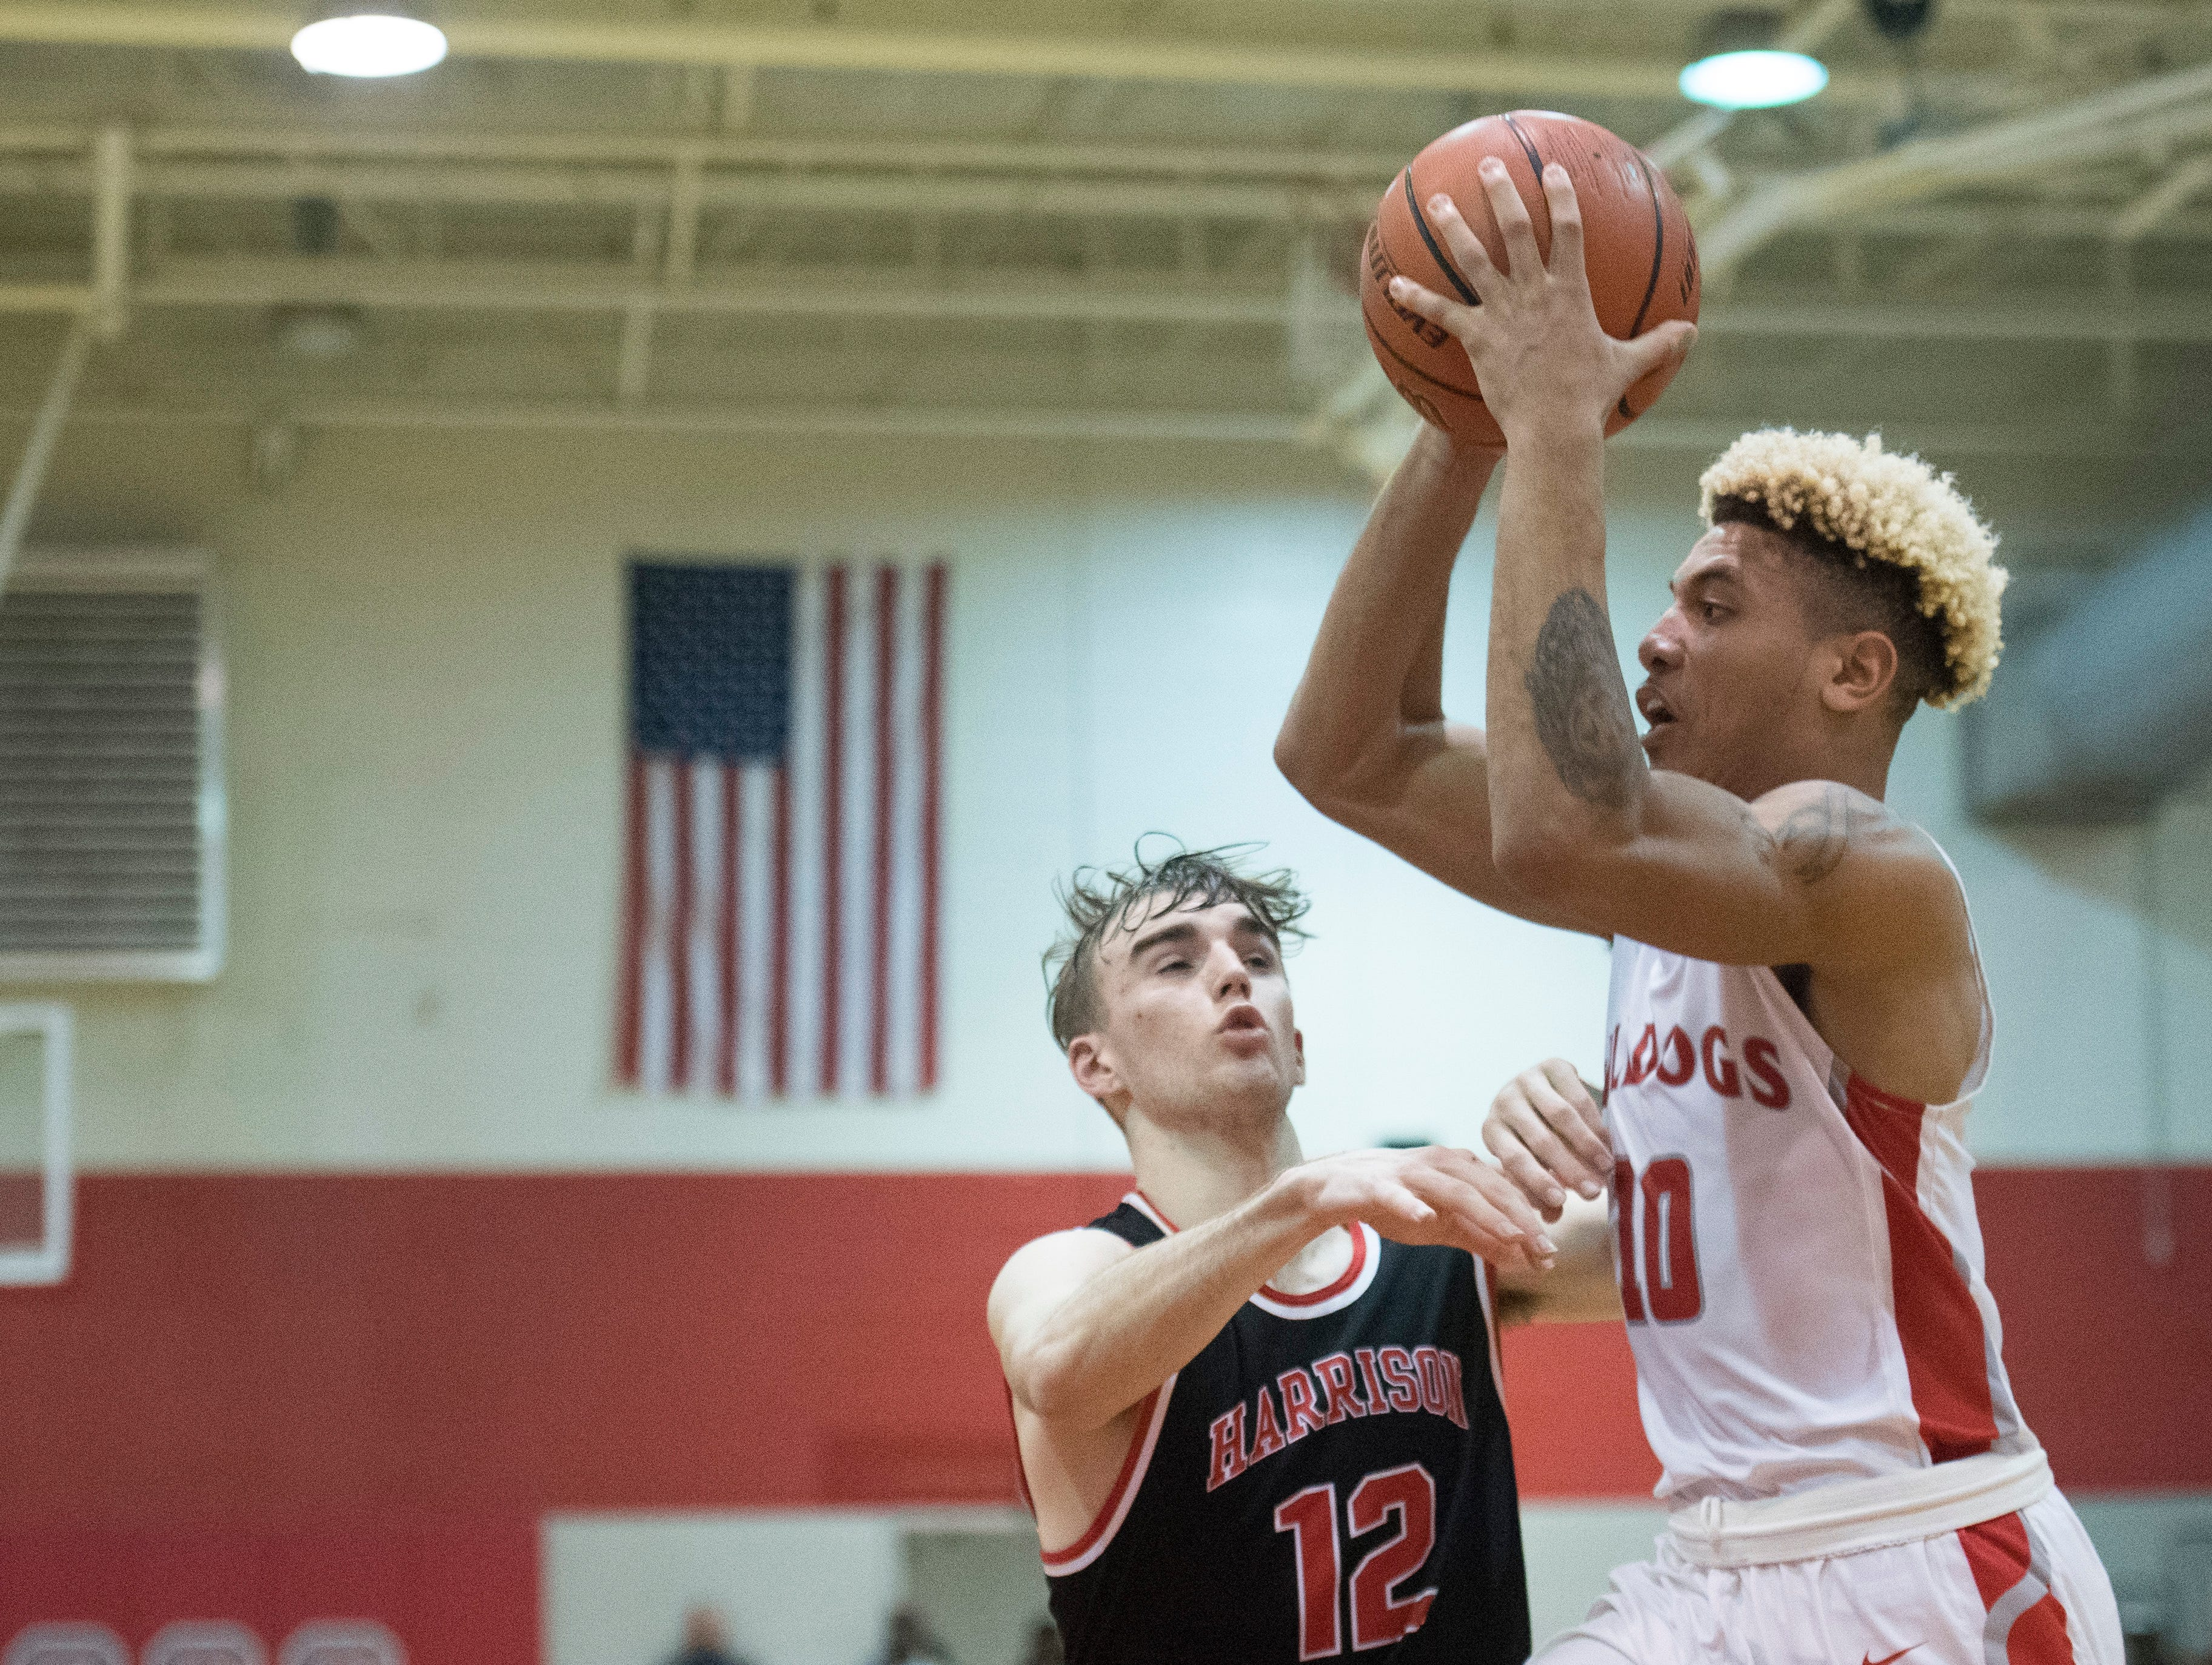 Bosse's Javen Layne (10) makes a pass during the Harrison vs Bosse game at Bosse High School Tuesday, Feb. 12, 2019. The Bosse Bulldogs won 74-56.